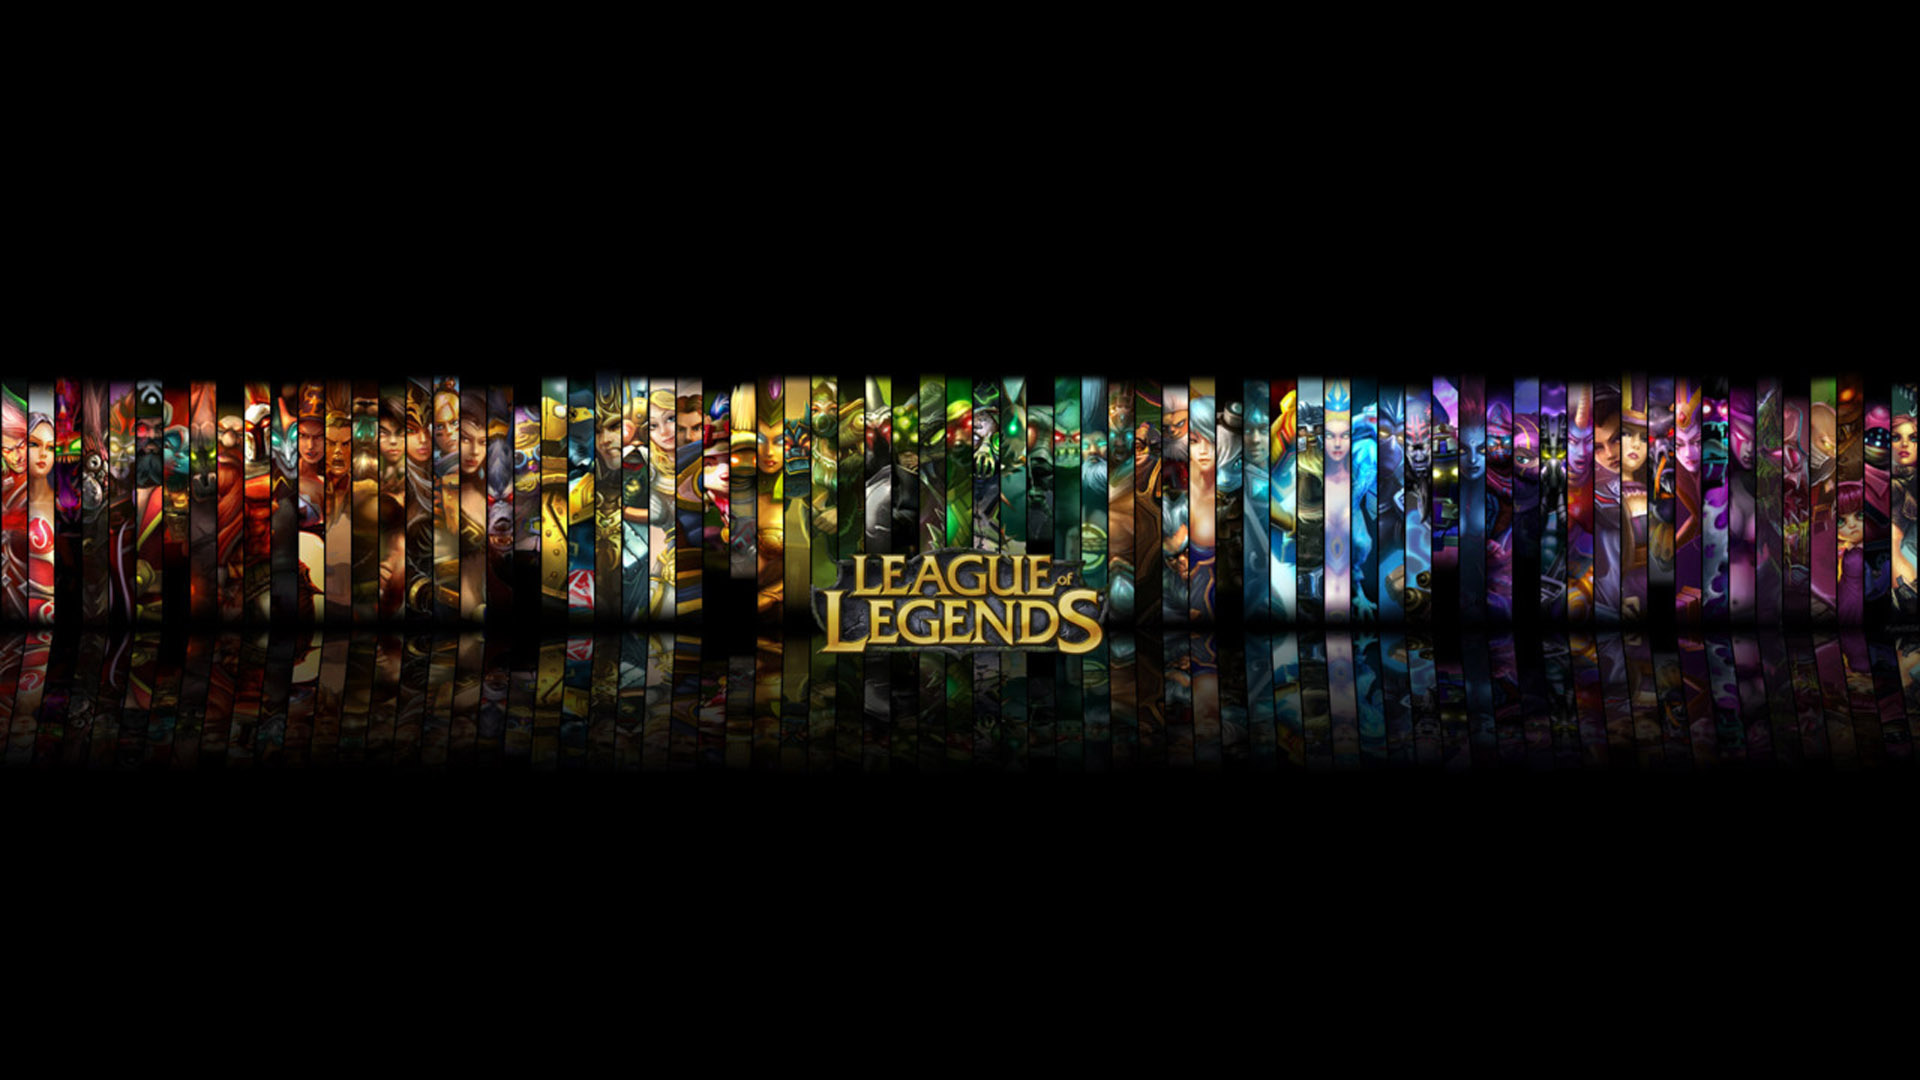 League of Legends Hero Collection HD Wallpaper FullHDWpp   Full HD 1920x1080